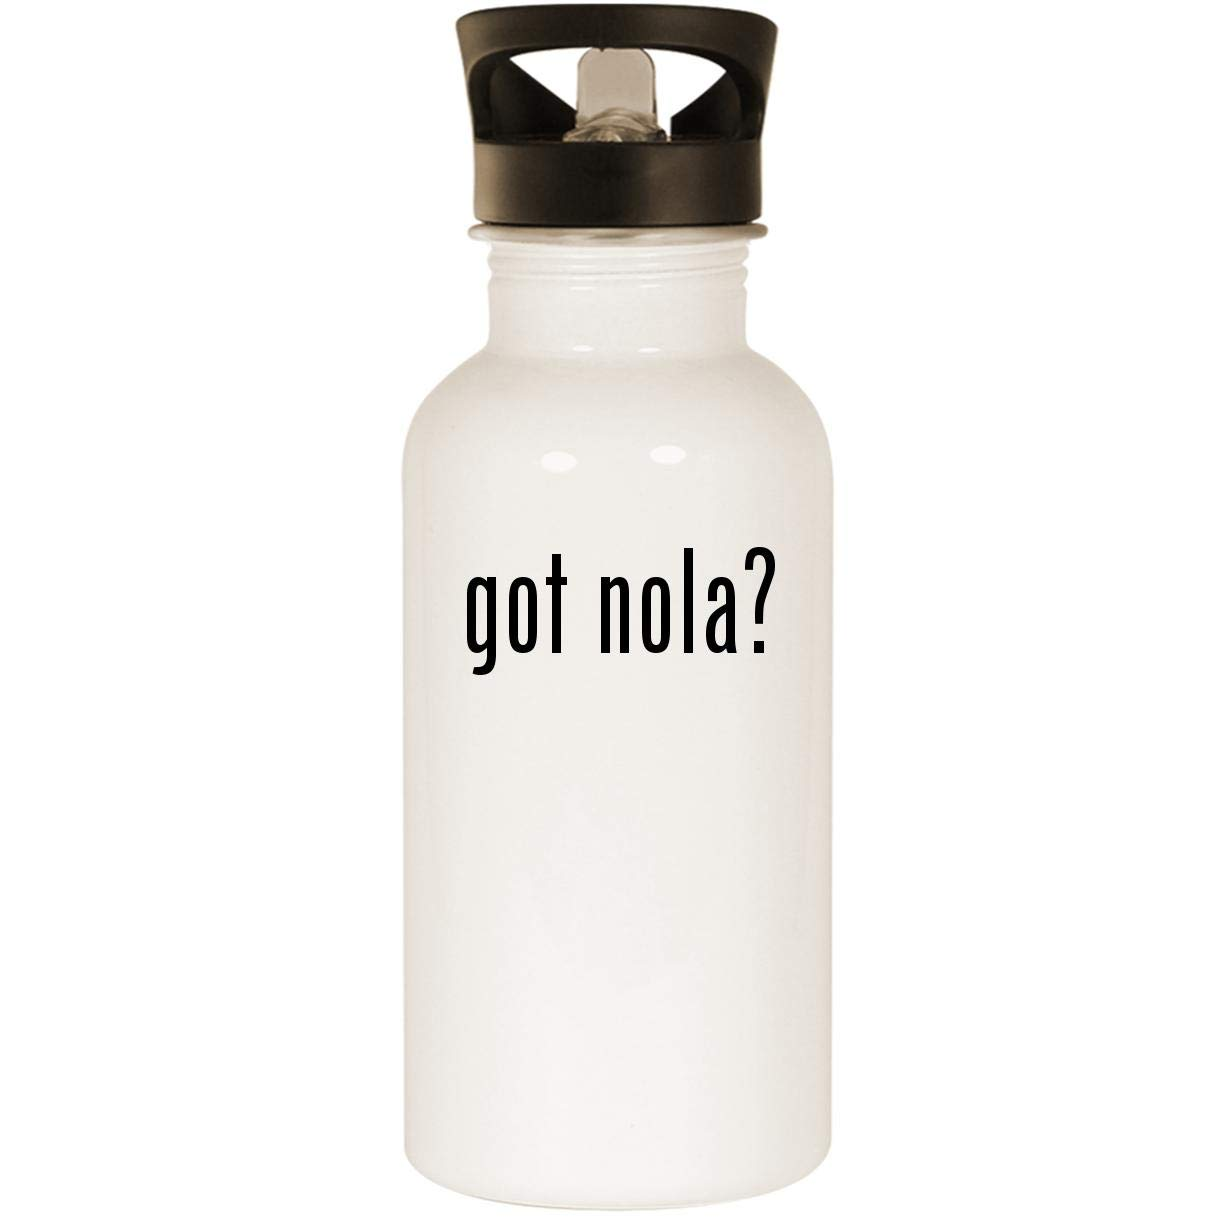 got nola? - Stainless Steel 20oz Road Ready Water Bottle, White